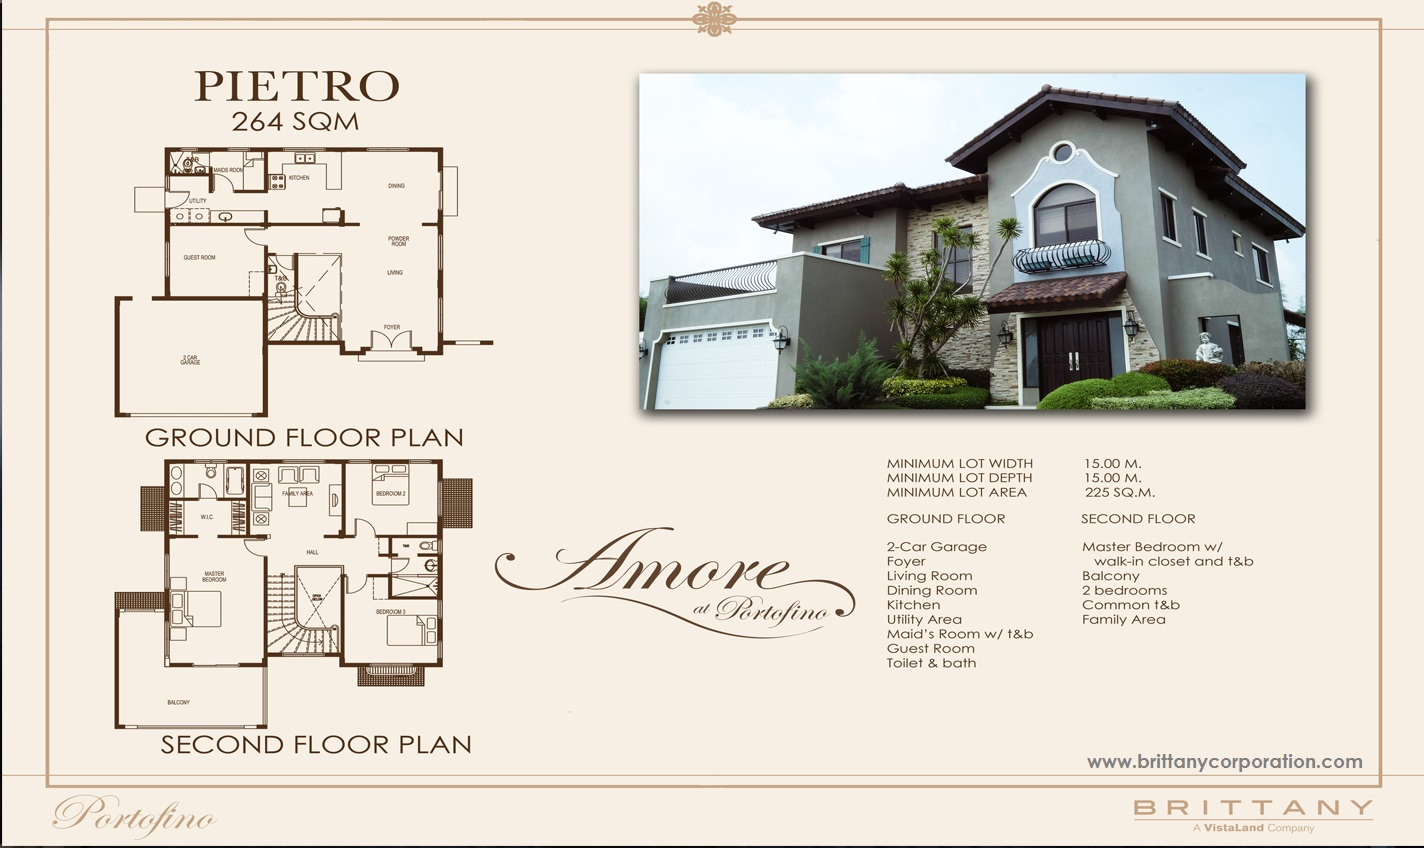 Floor Plan of Pietro Model - Amore Portofino | House and Lot for Sale Daang Reyna Las Pinas